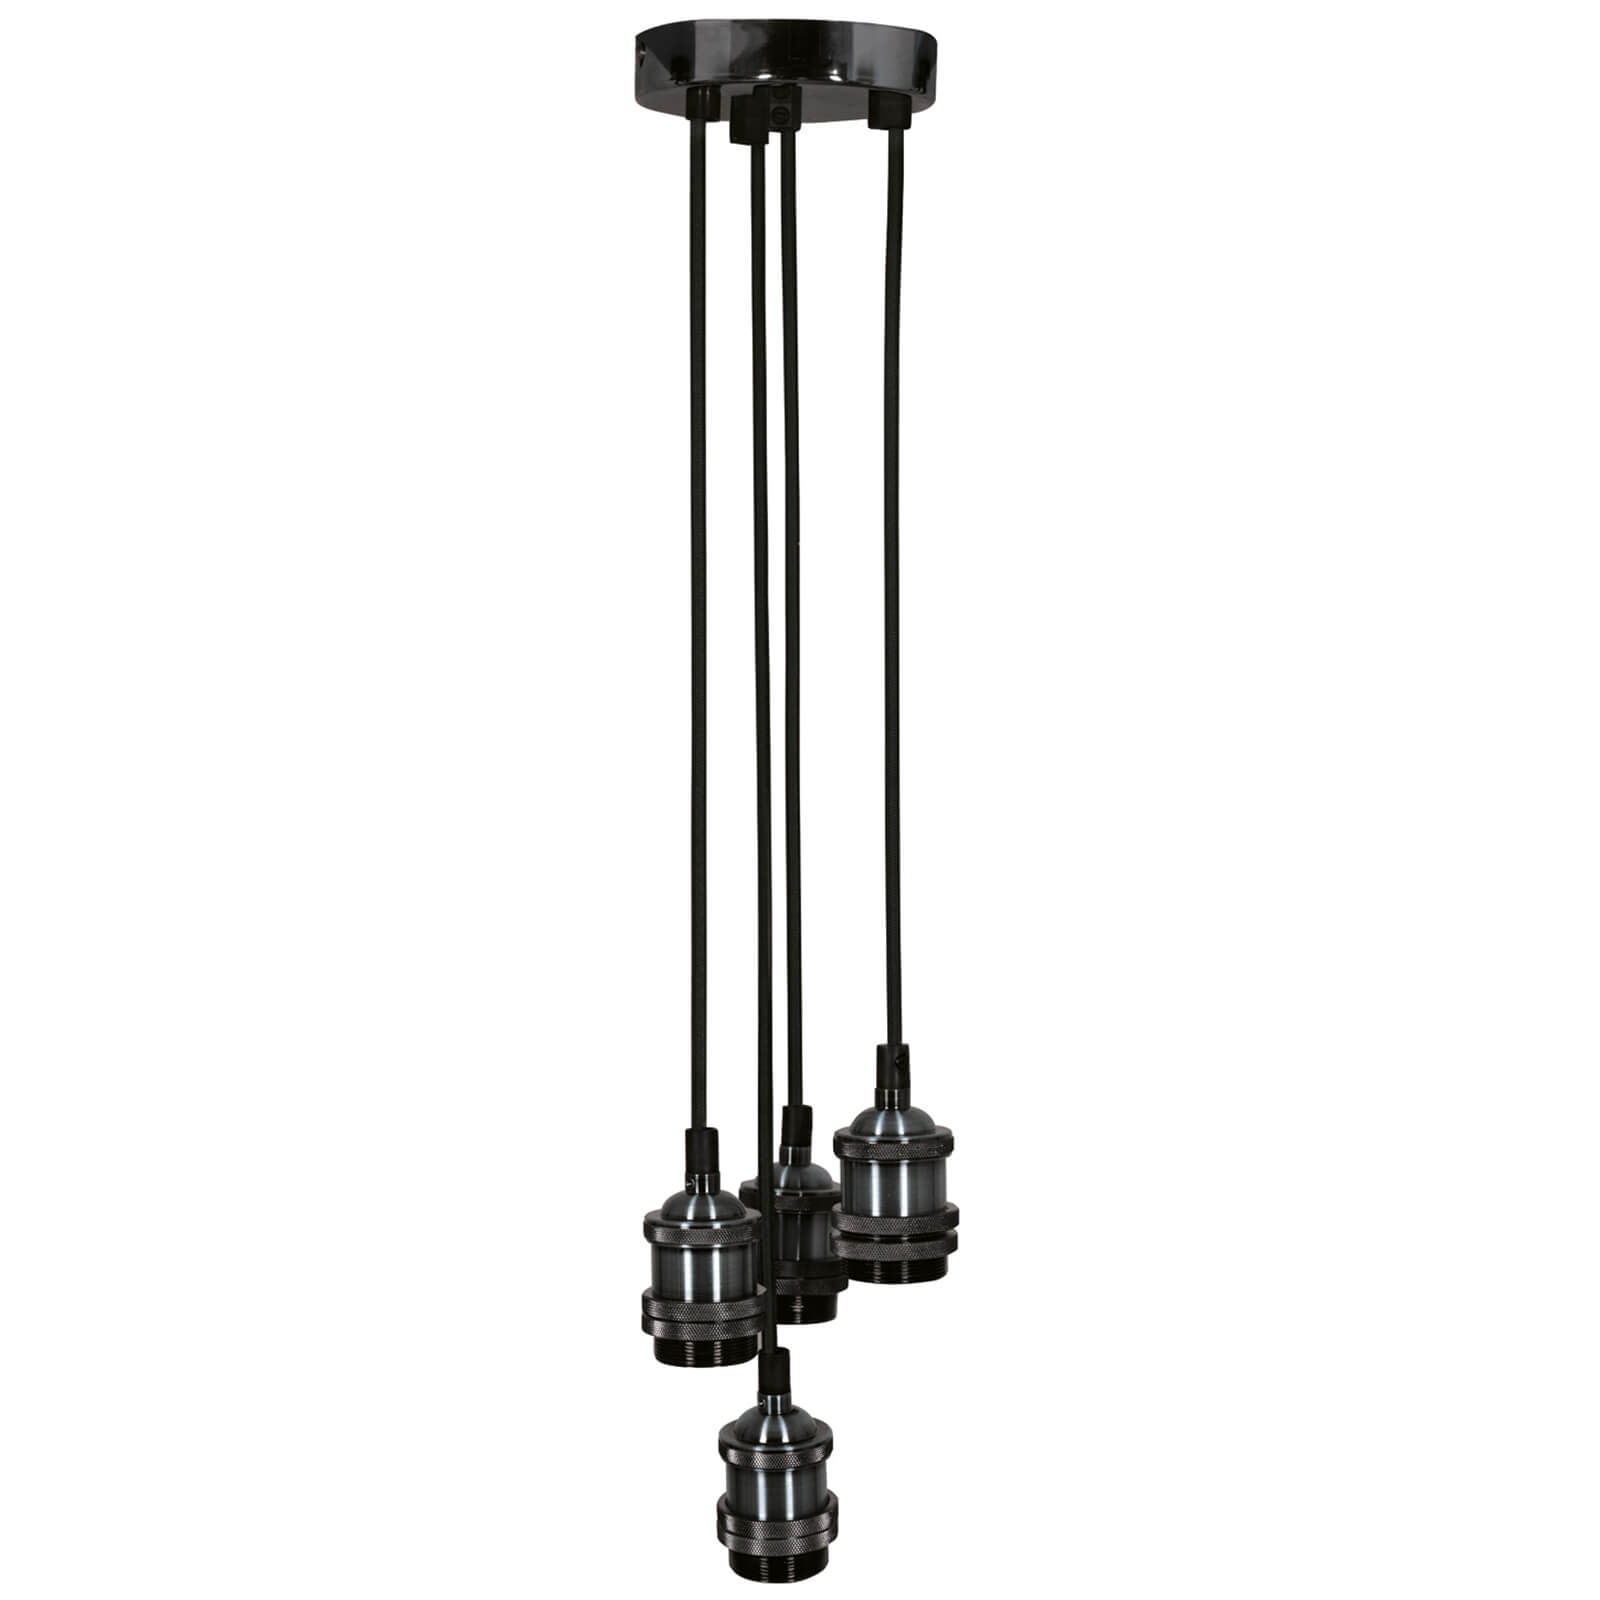 Lyyt Quad E27 Pendant Cord Set - Black Chrome